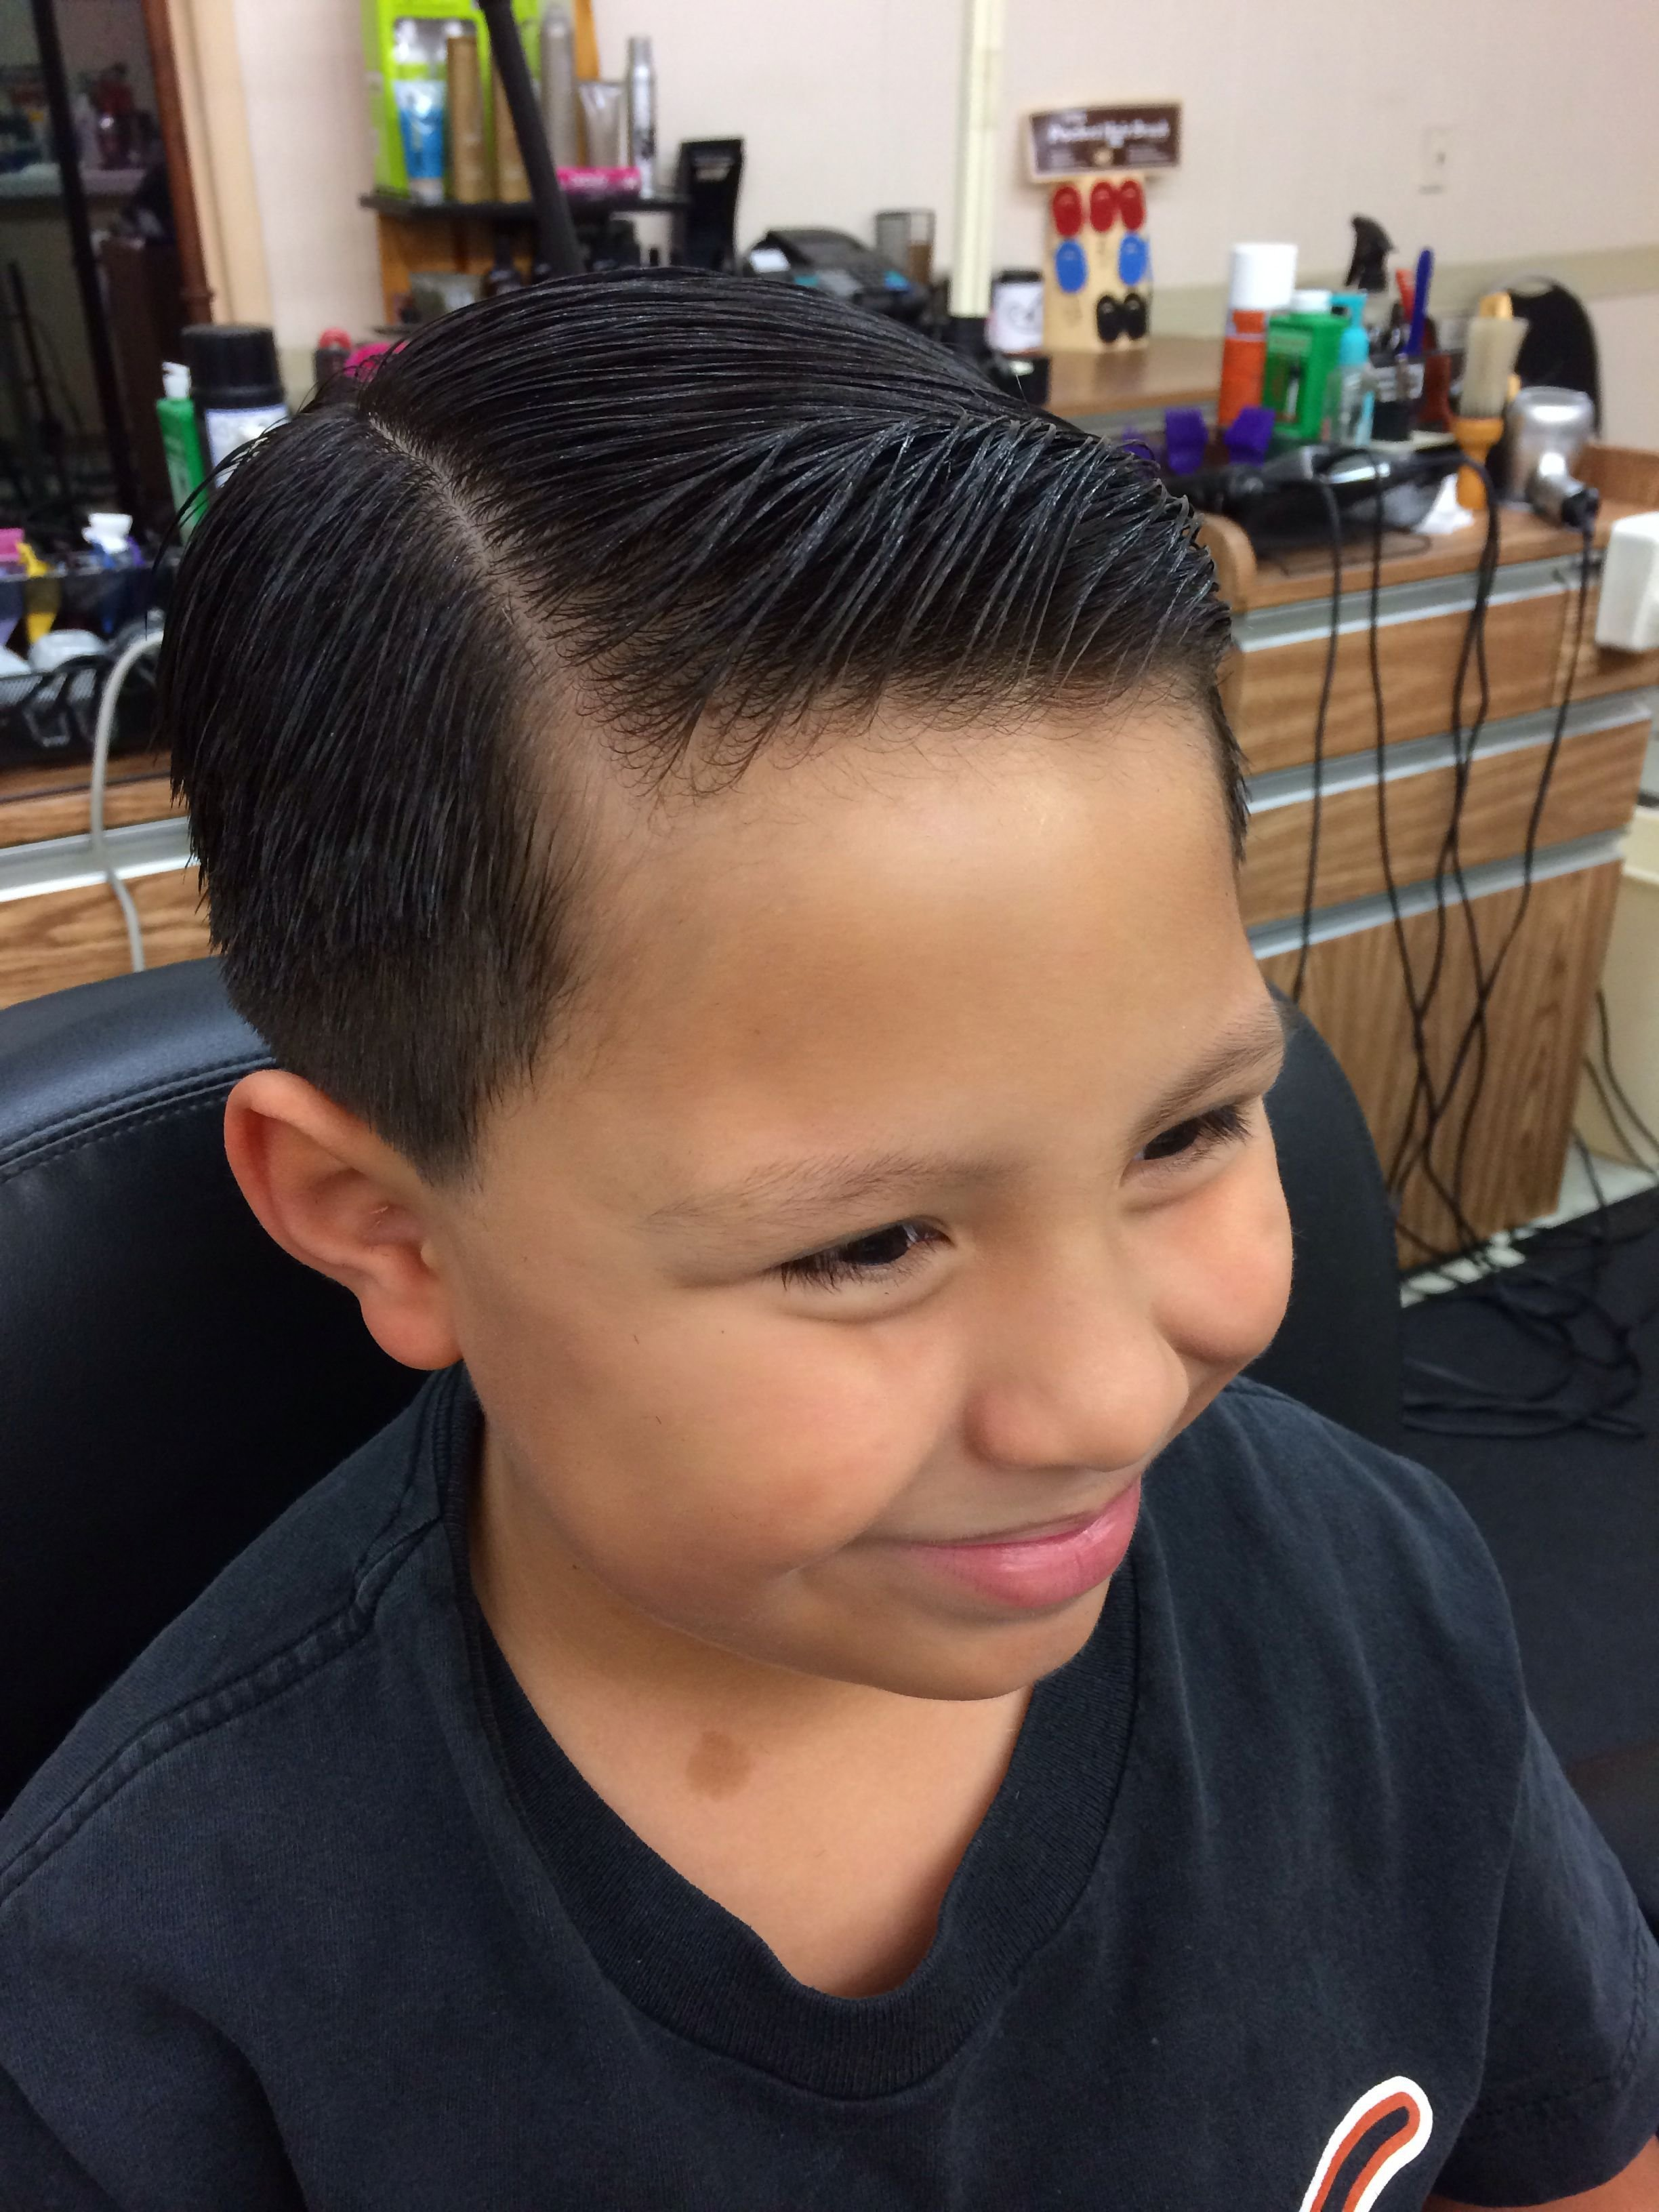 New Little Boys Haircut Barber Shop Hair Cuts Boy Ideas With Pictures